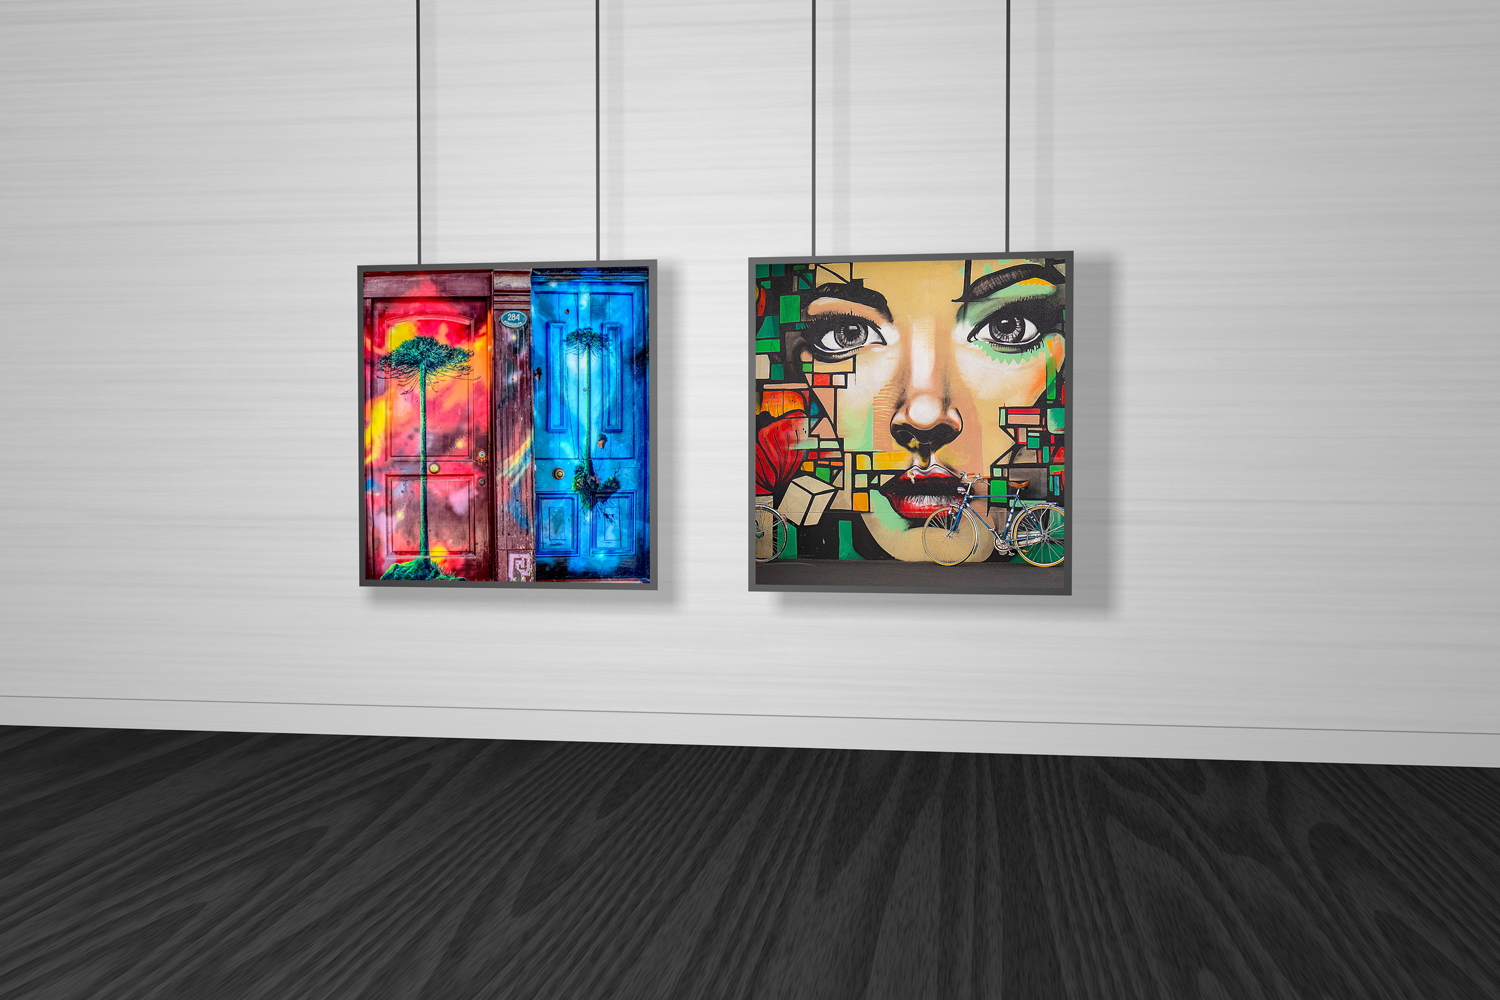 Free-Gallery-Interior-Poster-Frame-Mockup-PSD-2018-600